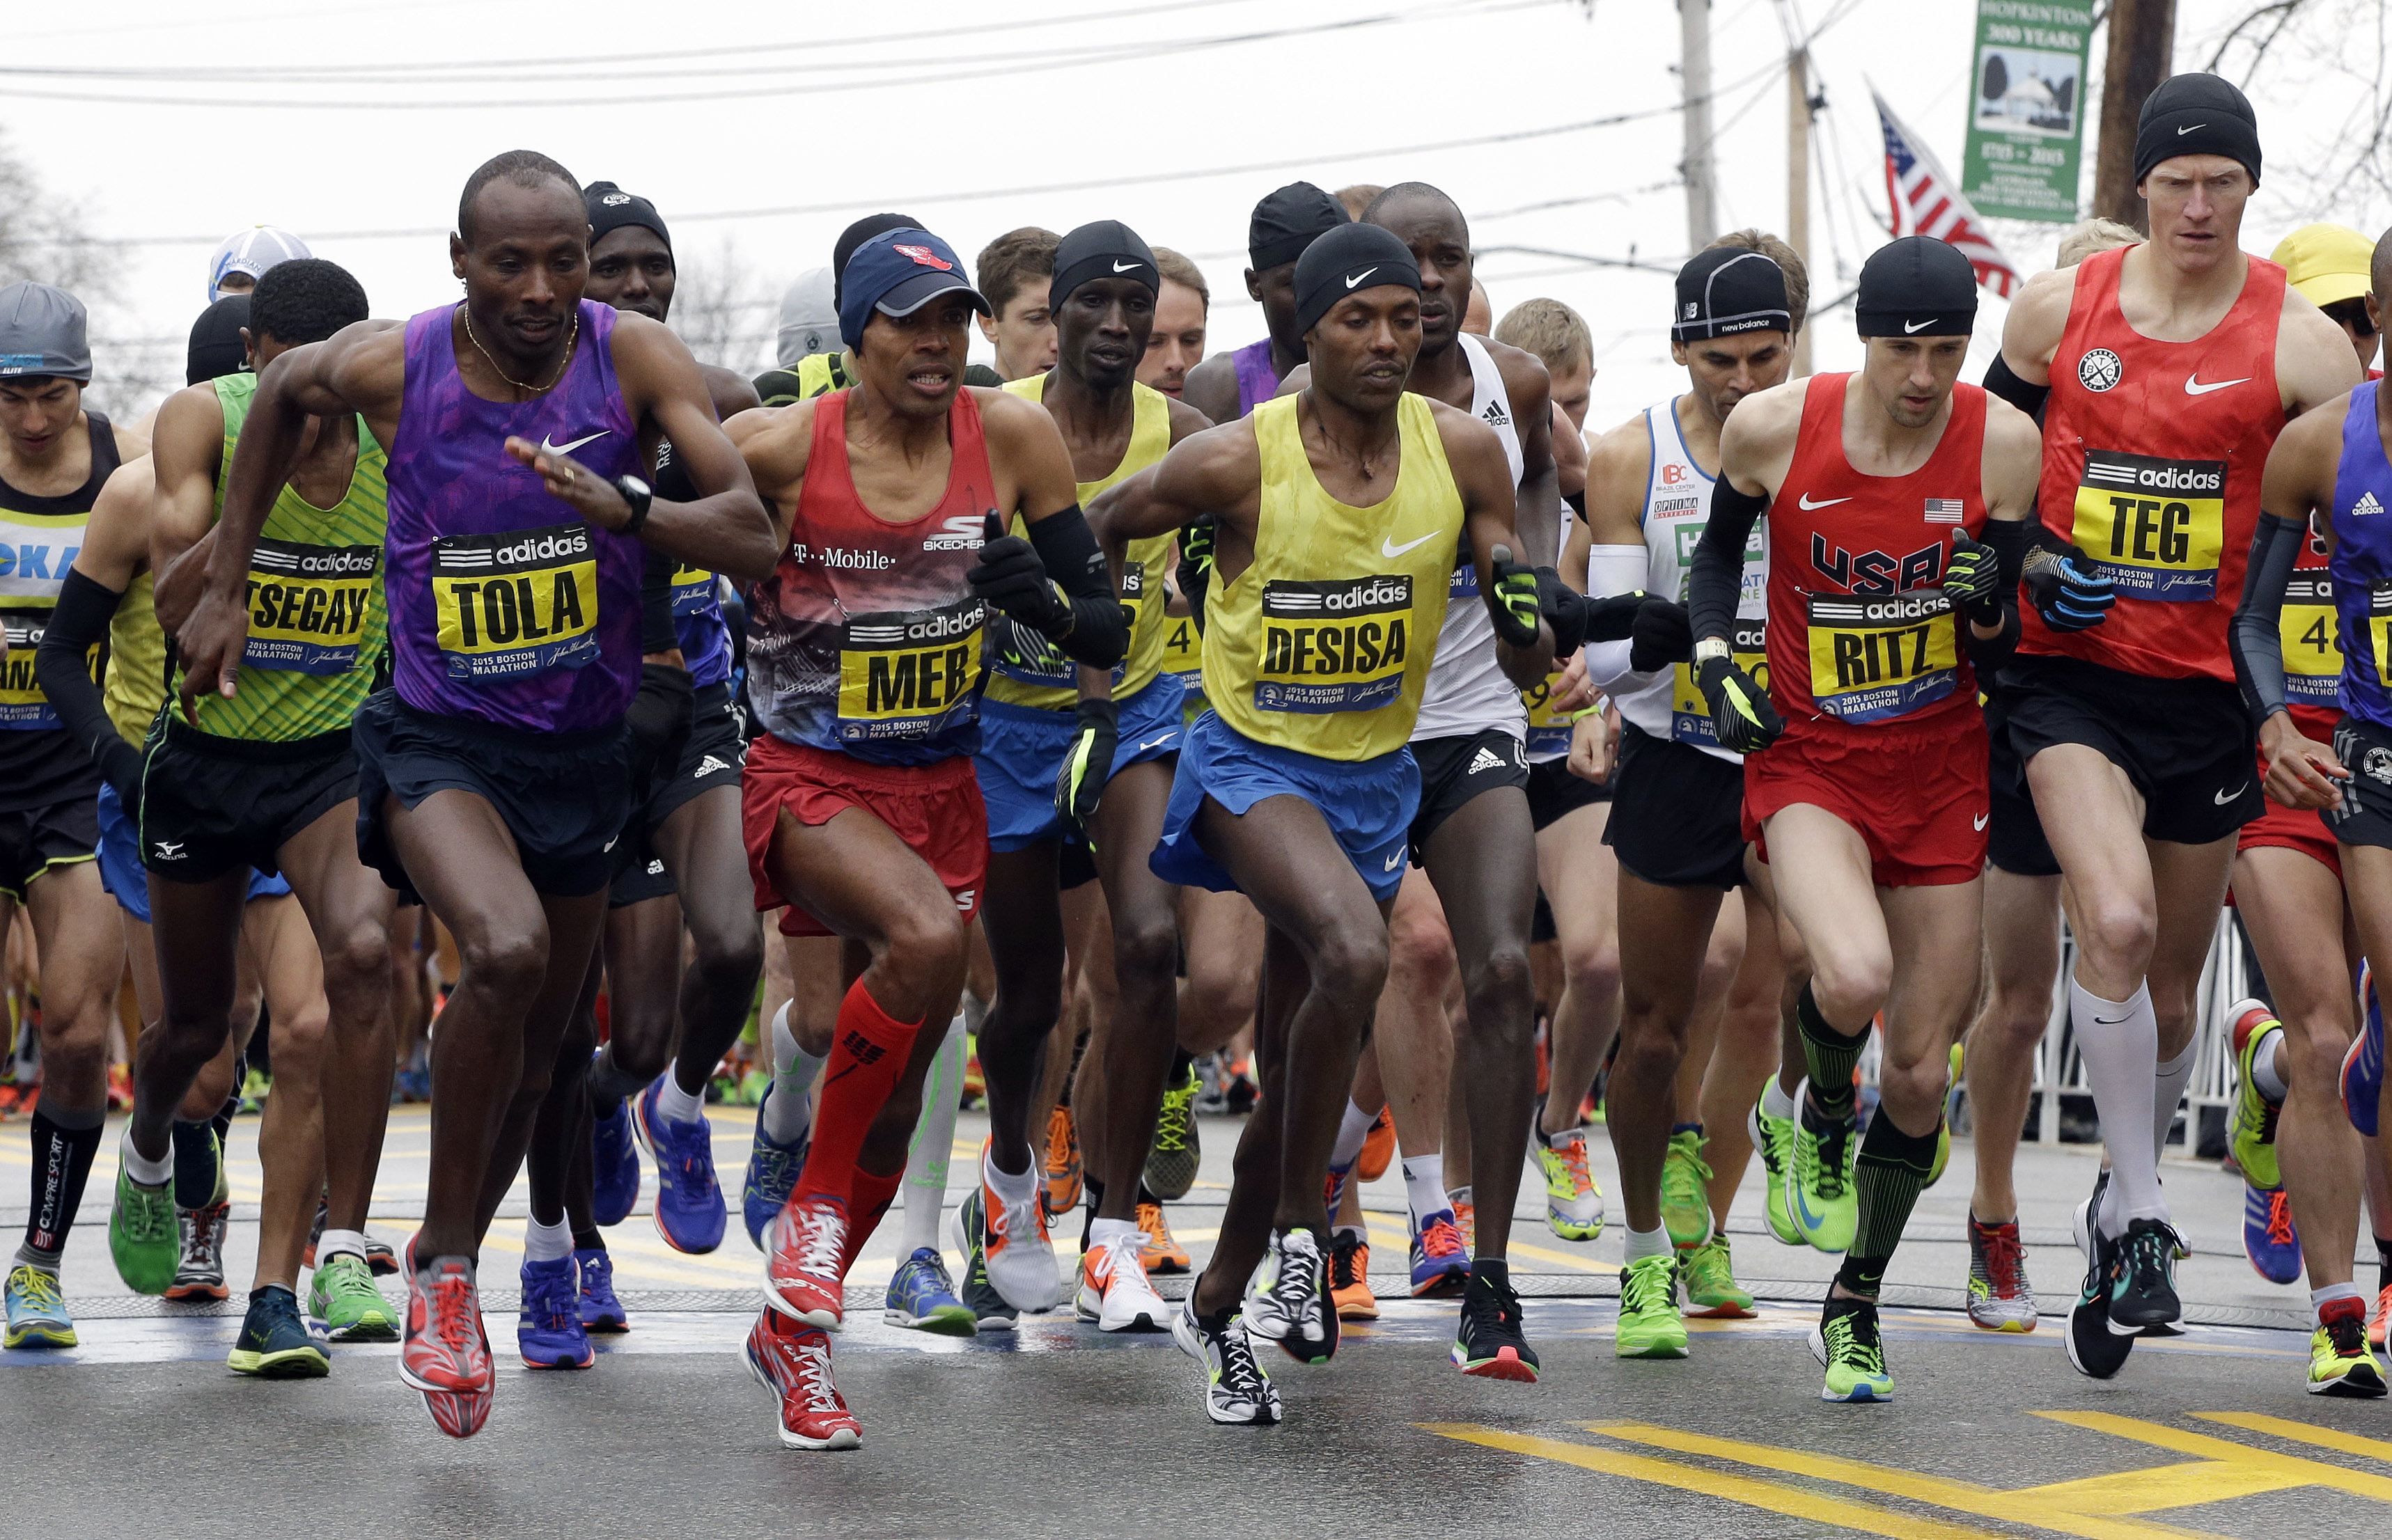 From left, Yemane Adhane Tsegay of Ethiopia, Tadese Tola of Ethiopia, Meb Keflezighi of San Diego, Lelisa Desisa of Ethiopia, Danthan Ritzenhein, of Rockford, Mich., and Matt Tegenkamp of Portland, Ore, leave the start line of the Boston Marathon  Ap...